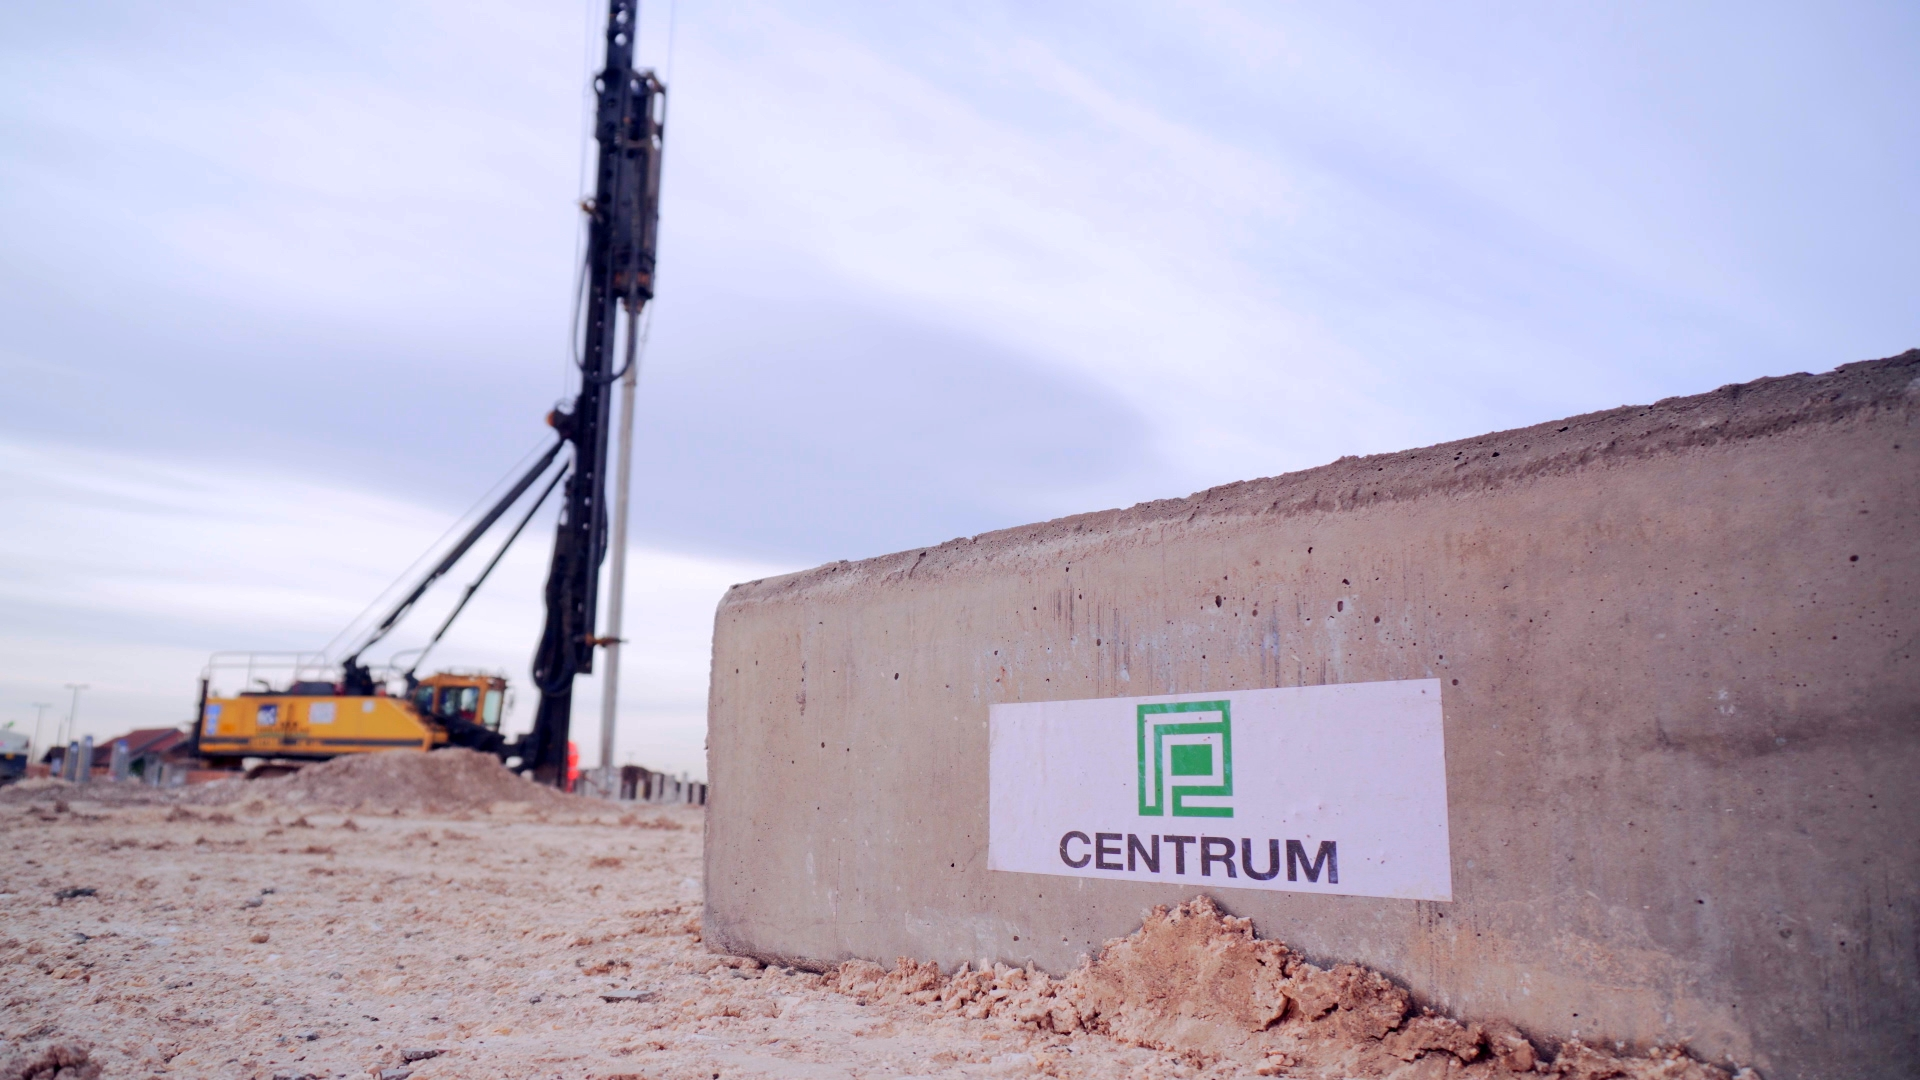 Centrum sustainable solutions